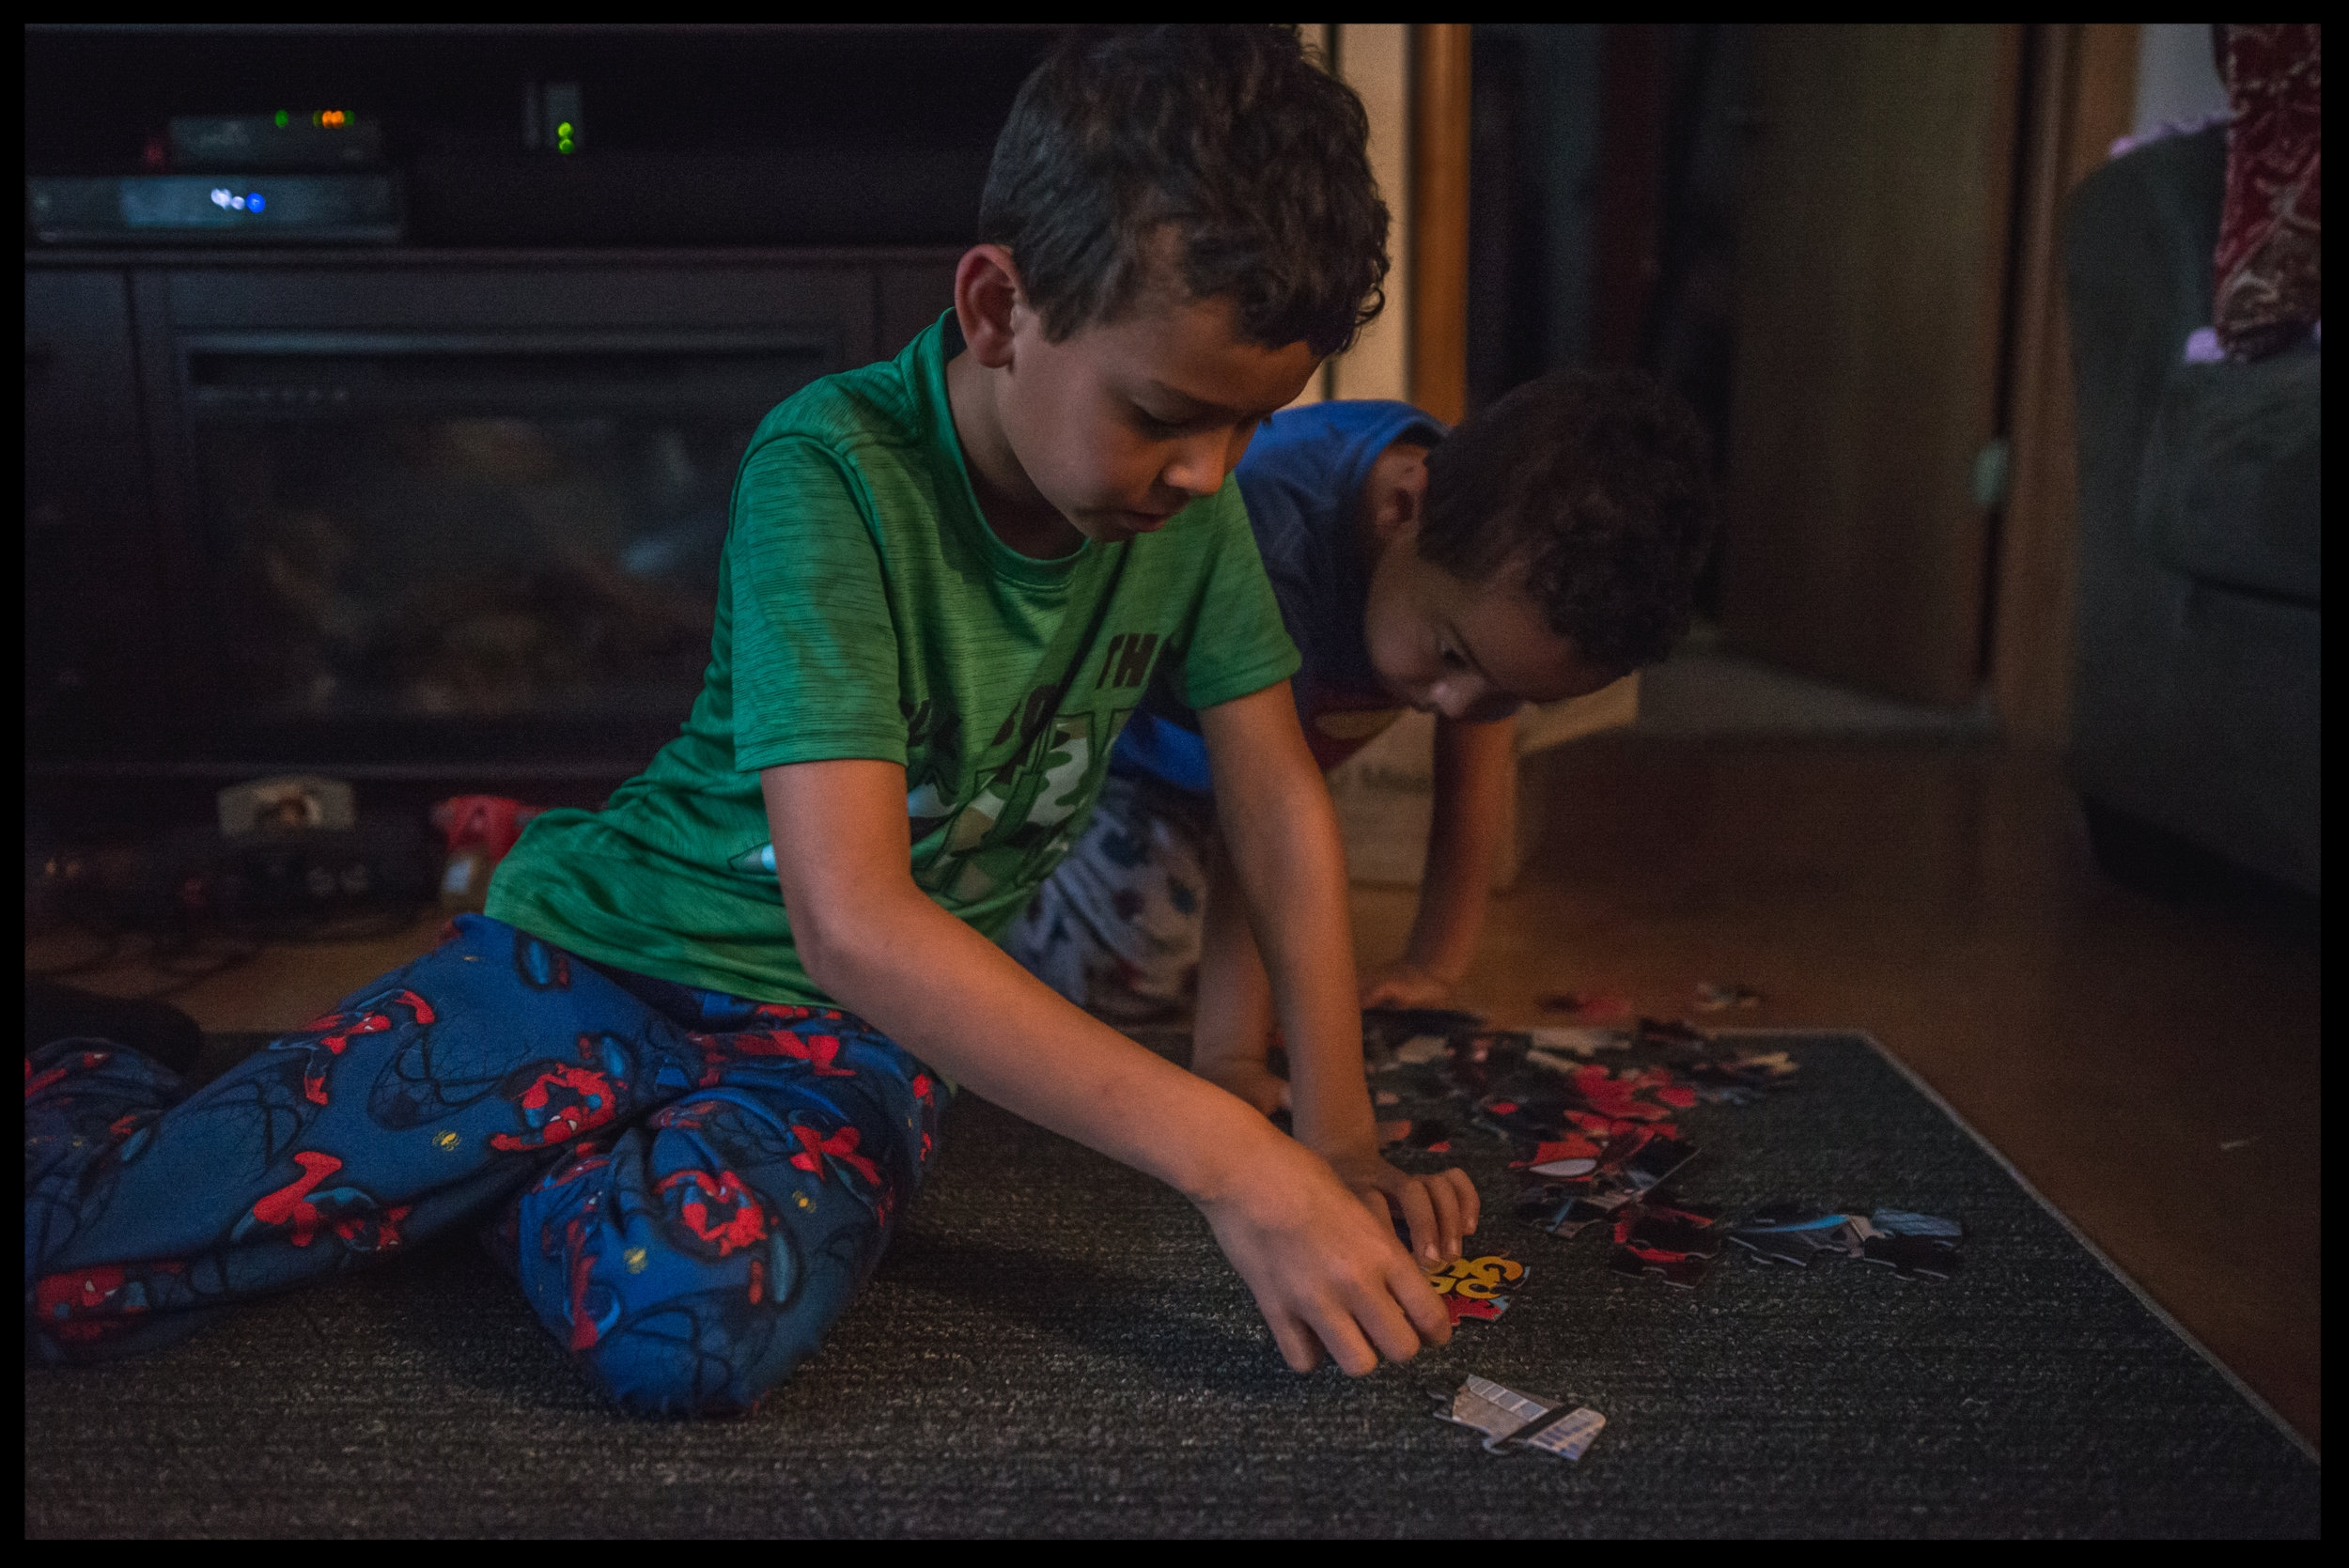 Two boys putting together a puzzle in their pajamas